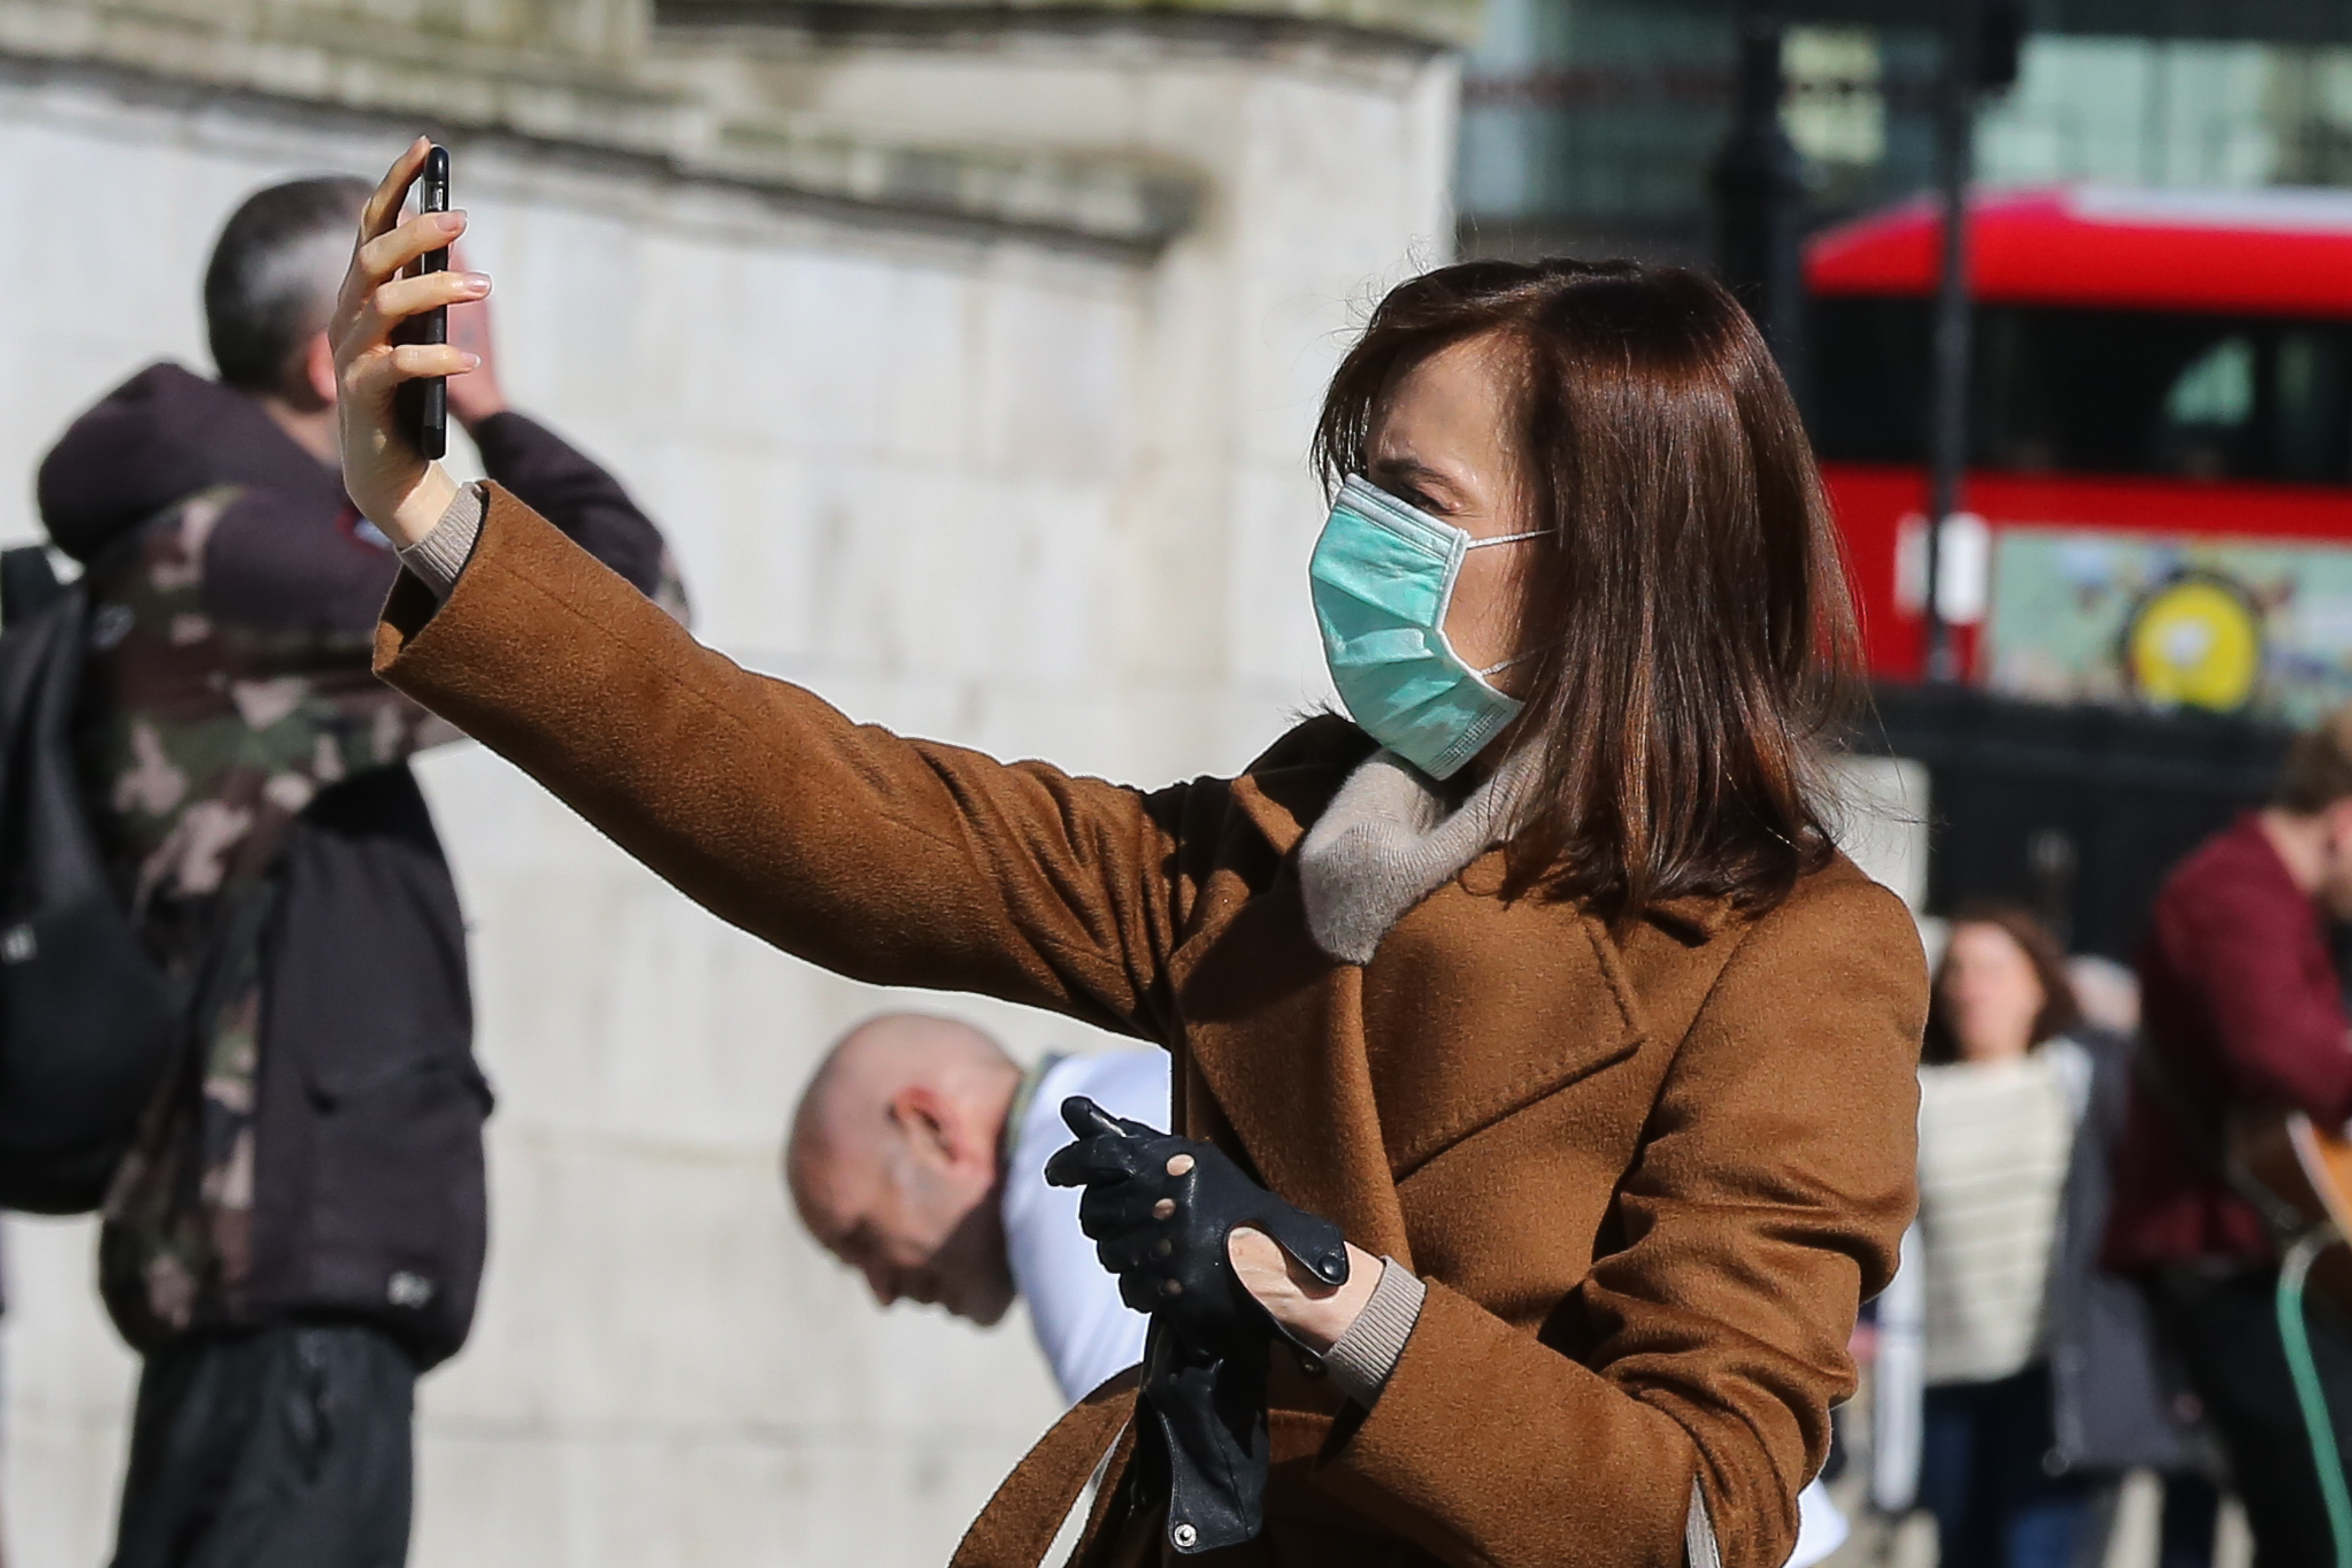 A woman wearing a face mask as a precaution against the spread of Coronavirus takes a selfie in central. (Photo by Steve Taylor / SOPA Images/Sipa USA)